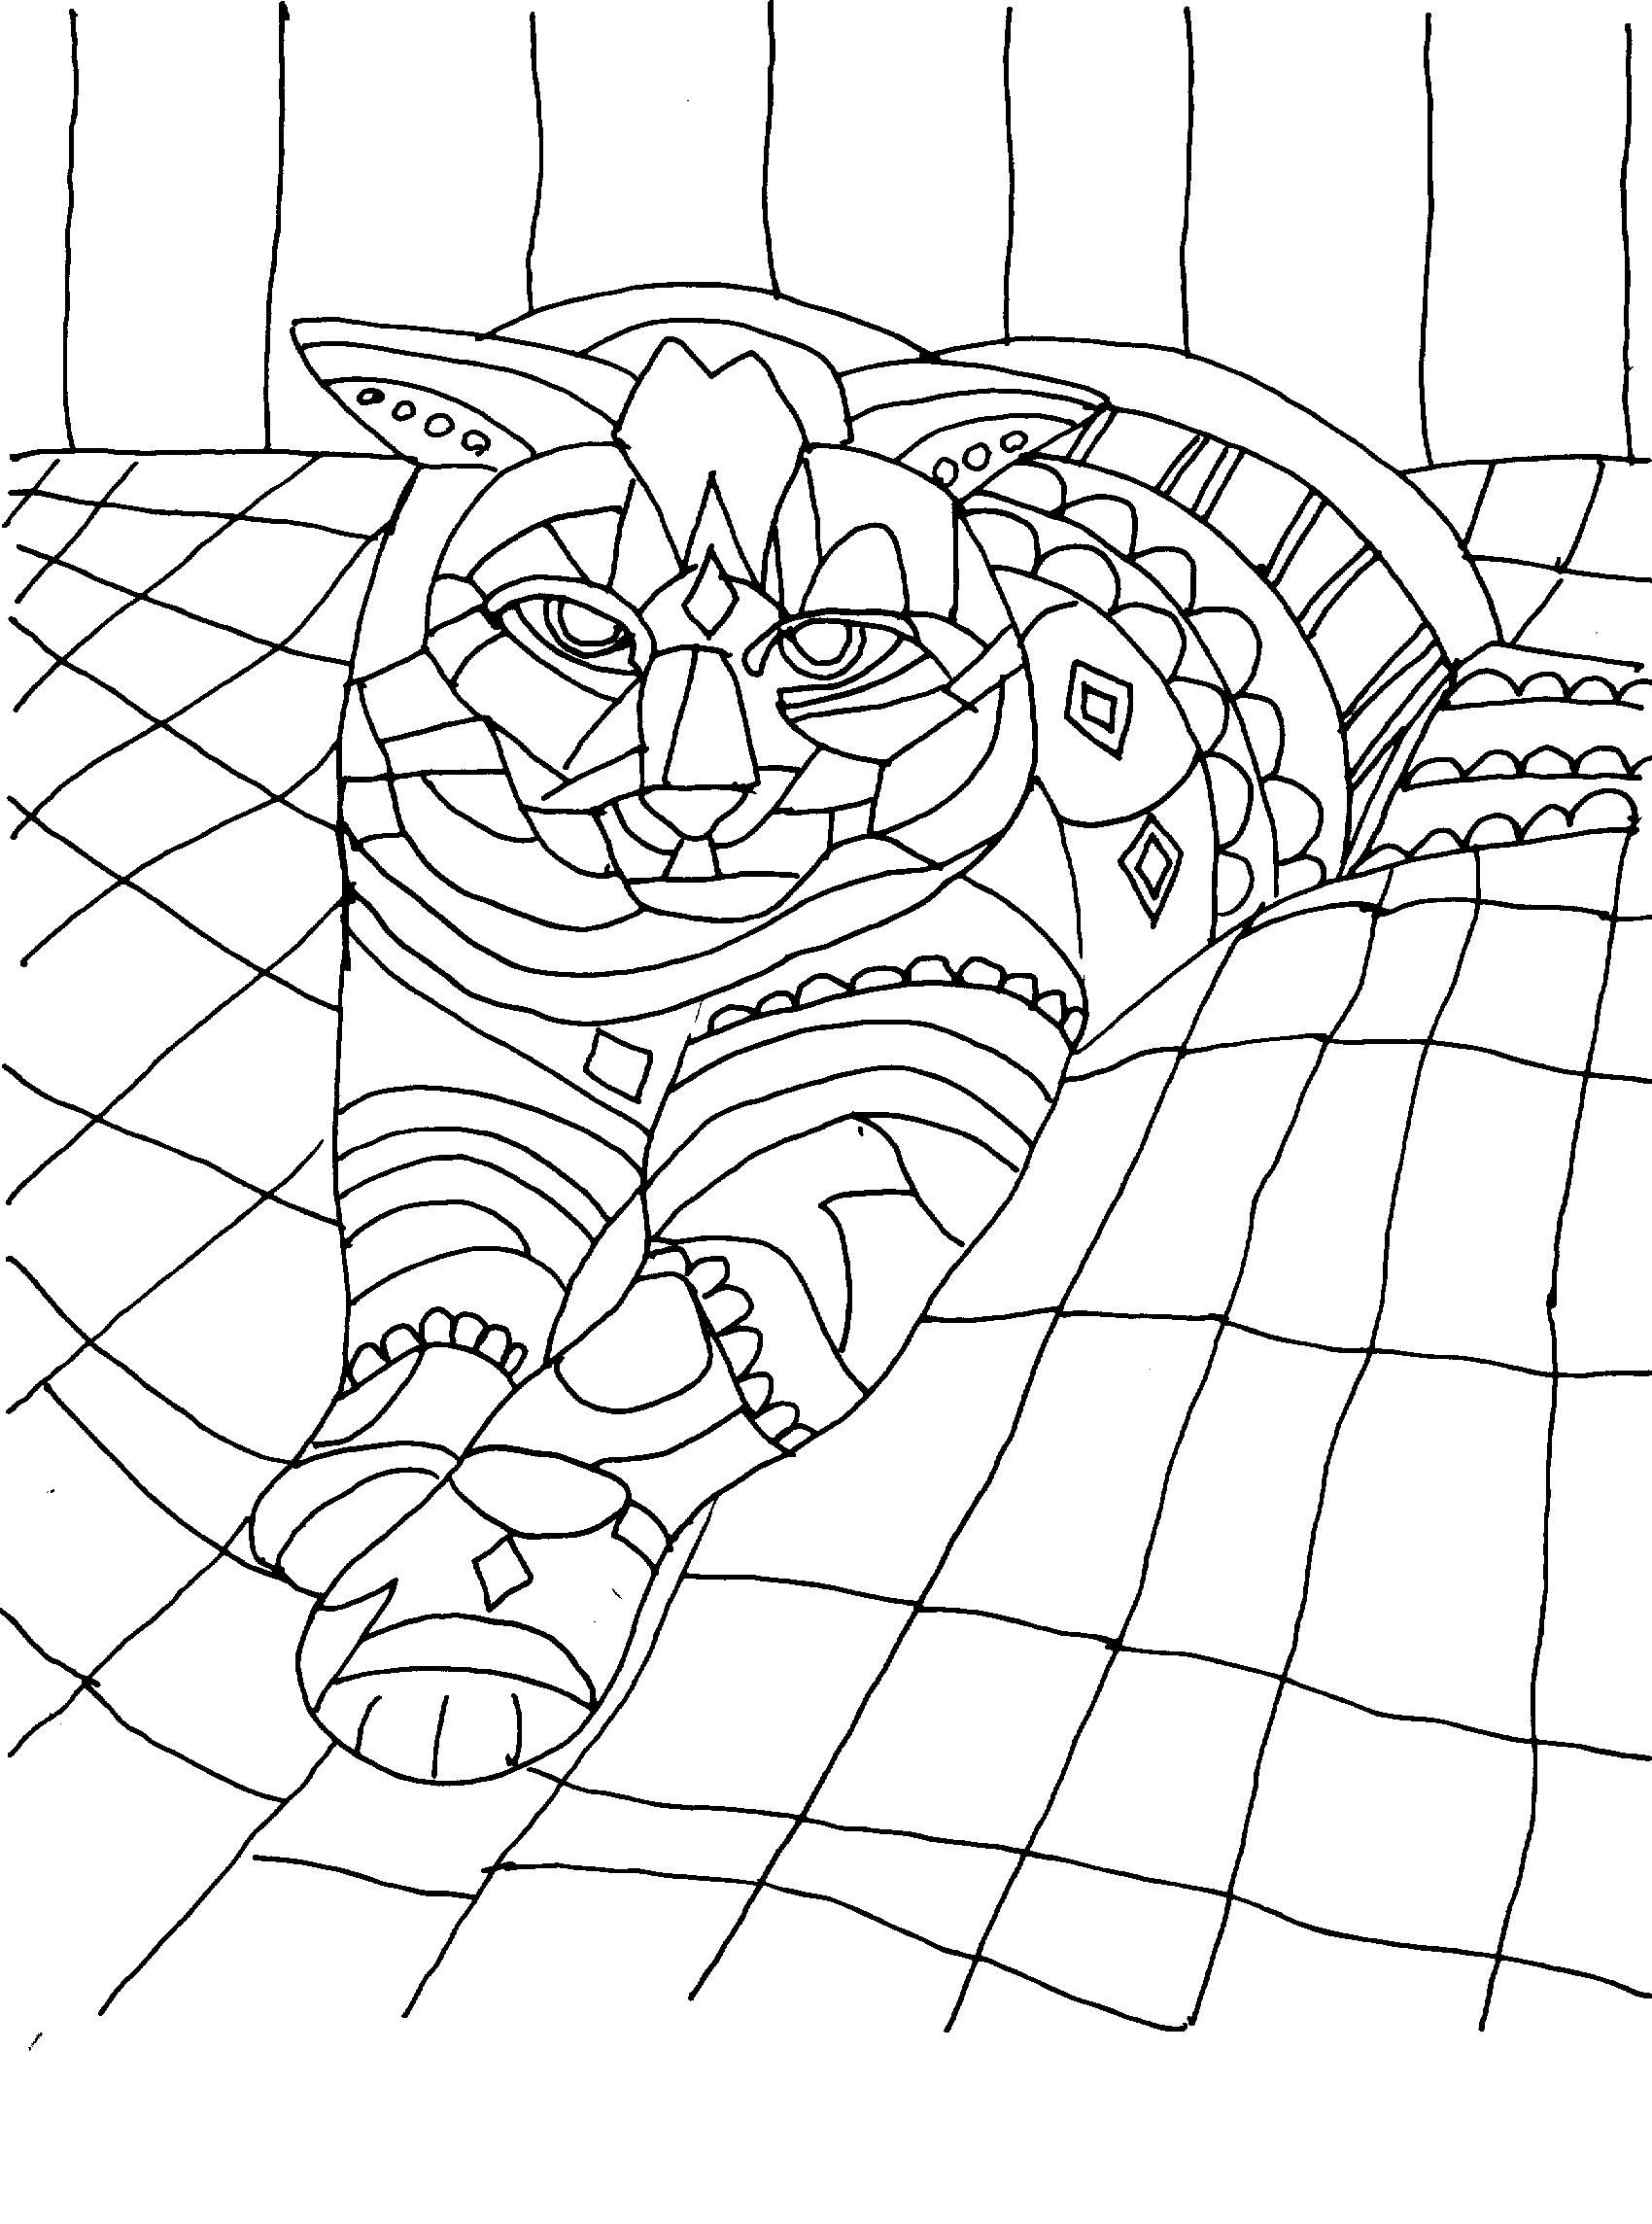 Abstract Cat On Blanket Coloring Pages Adult Coloring Pages